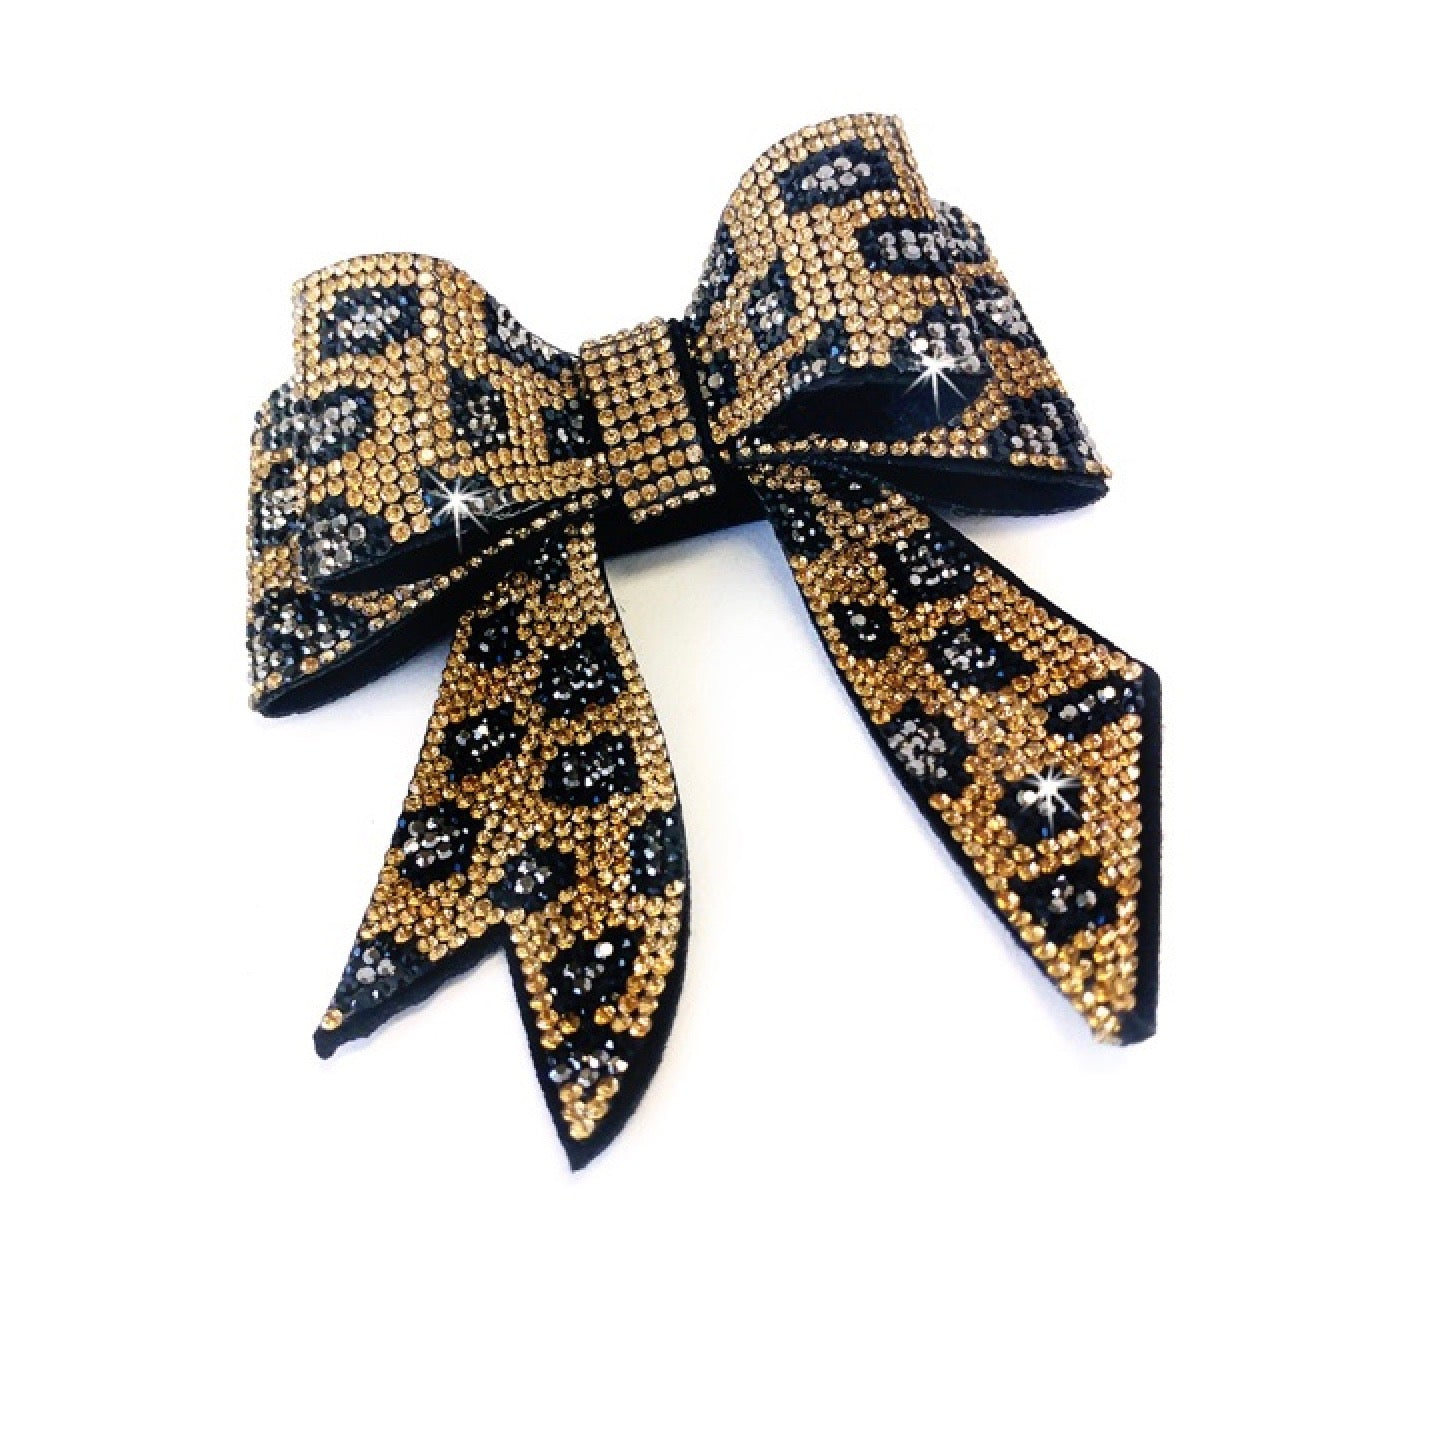 "Jacqueline Kent ""Sugar Cane Collection"" Crystal Bow - Gold Leopard"